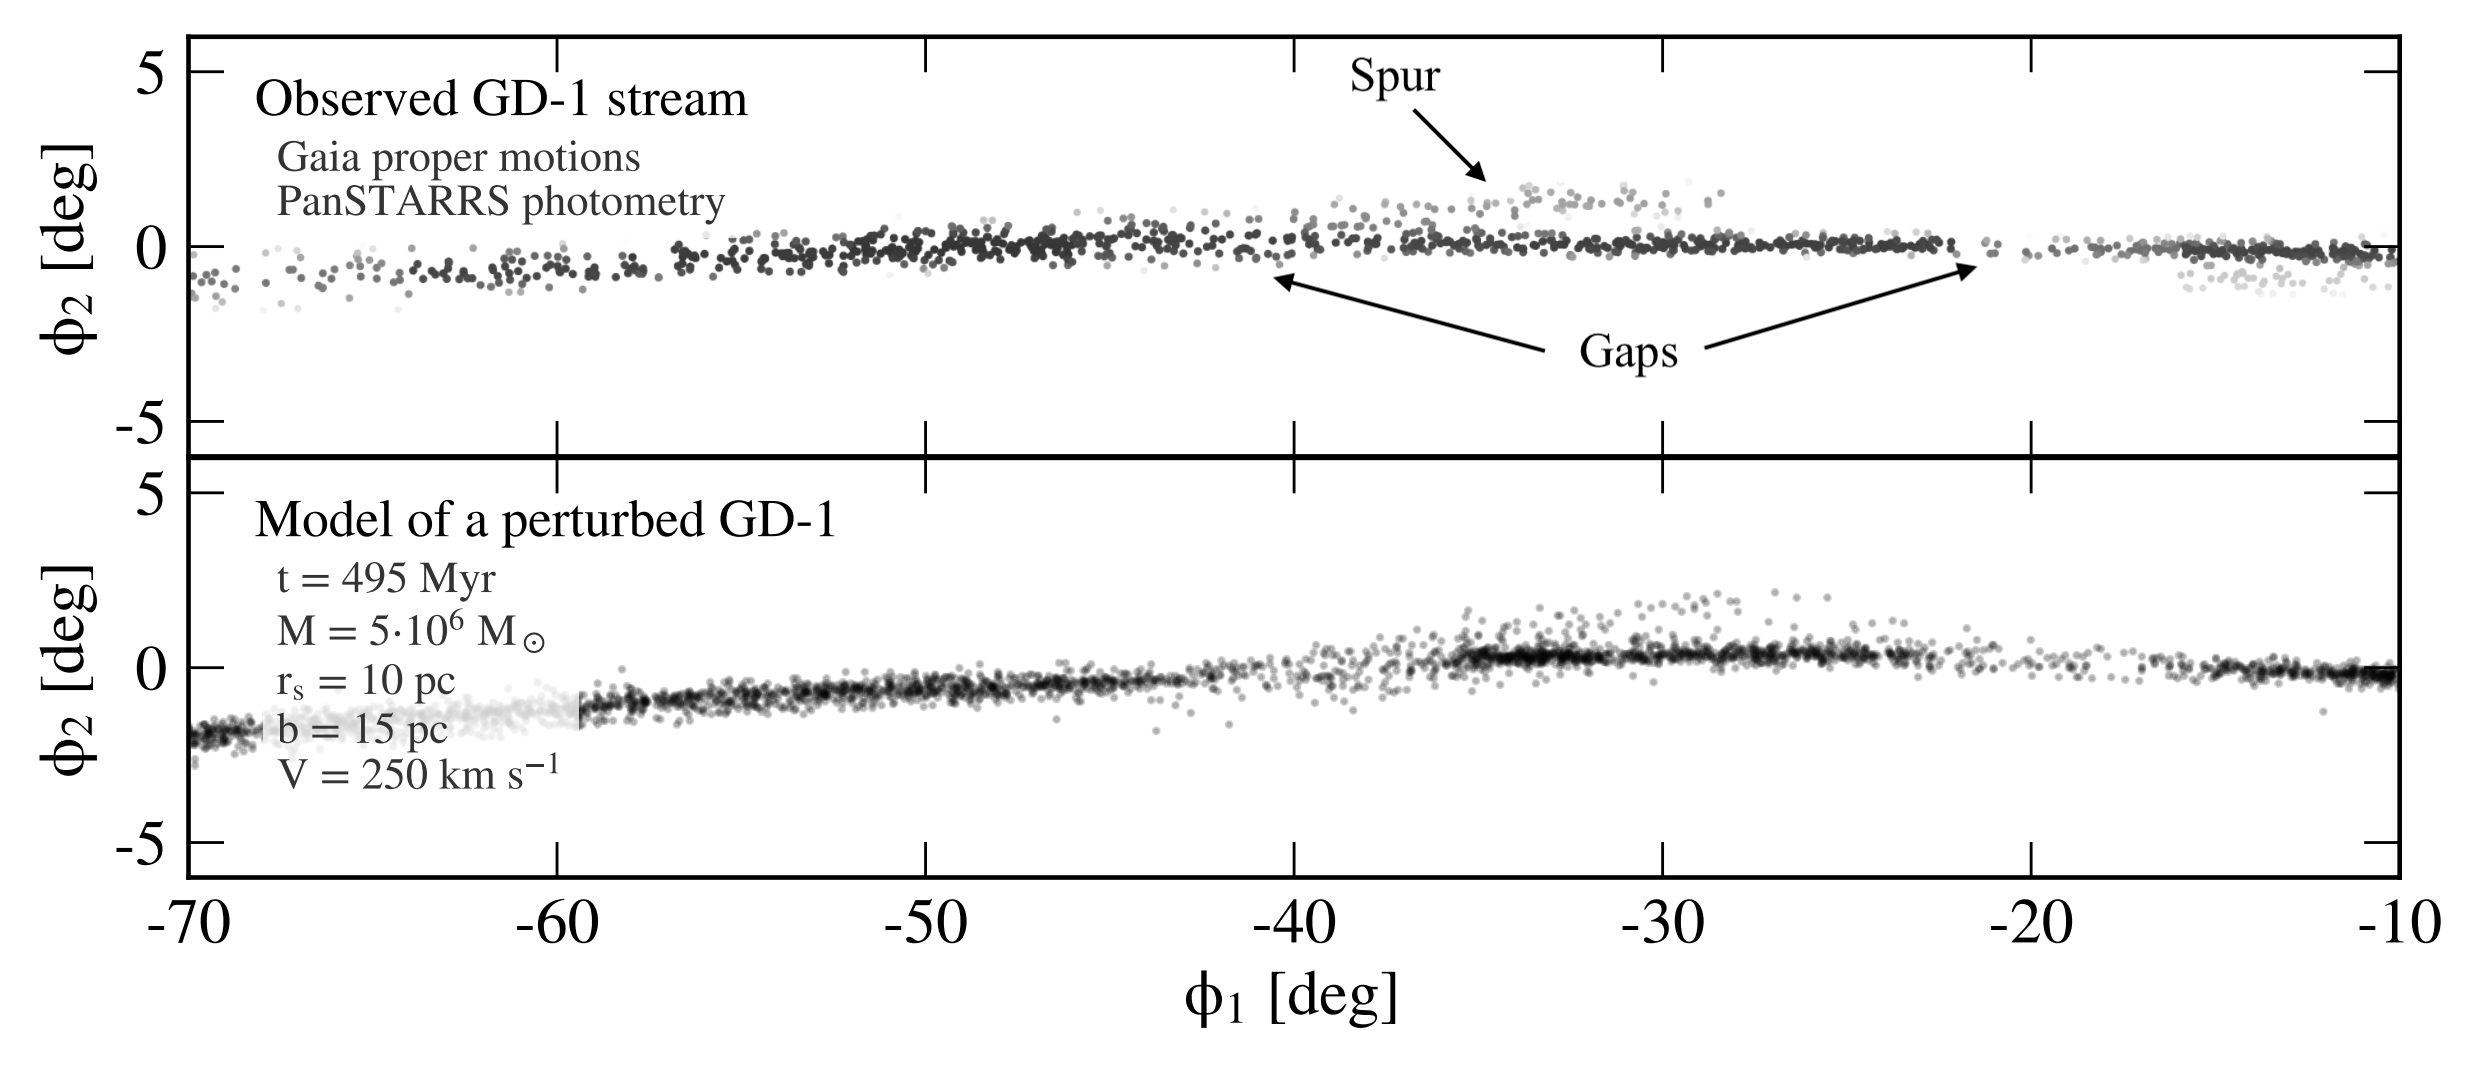 The top panel shows the observed positions of stars in the GD-1 stream, where a spur and gaps are visible. The bottom panel shows a model of the stream's history which includes perturbations from a dark matter subhalo.